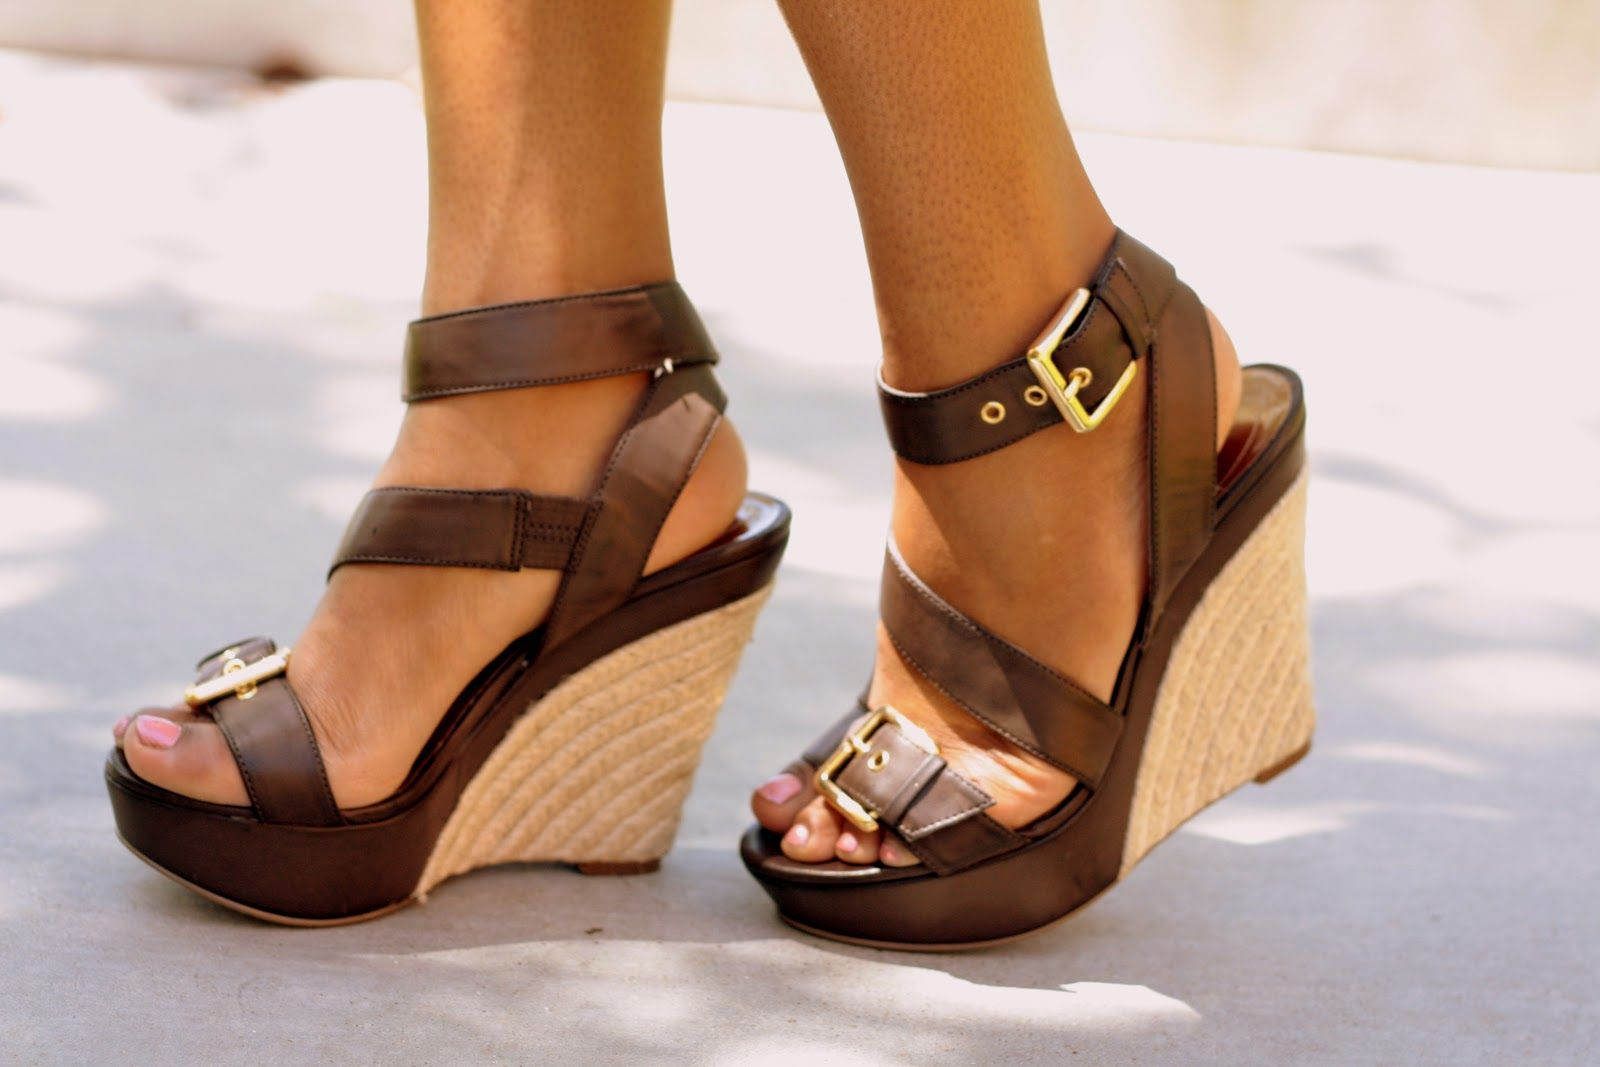 Parisa Wedge Sandals, G by Guess from DSW | Shoes | Shoes